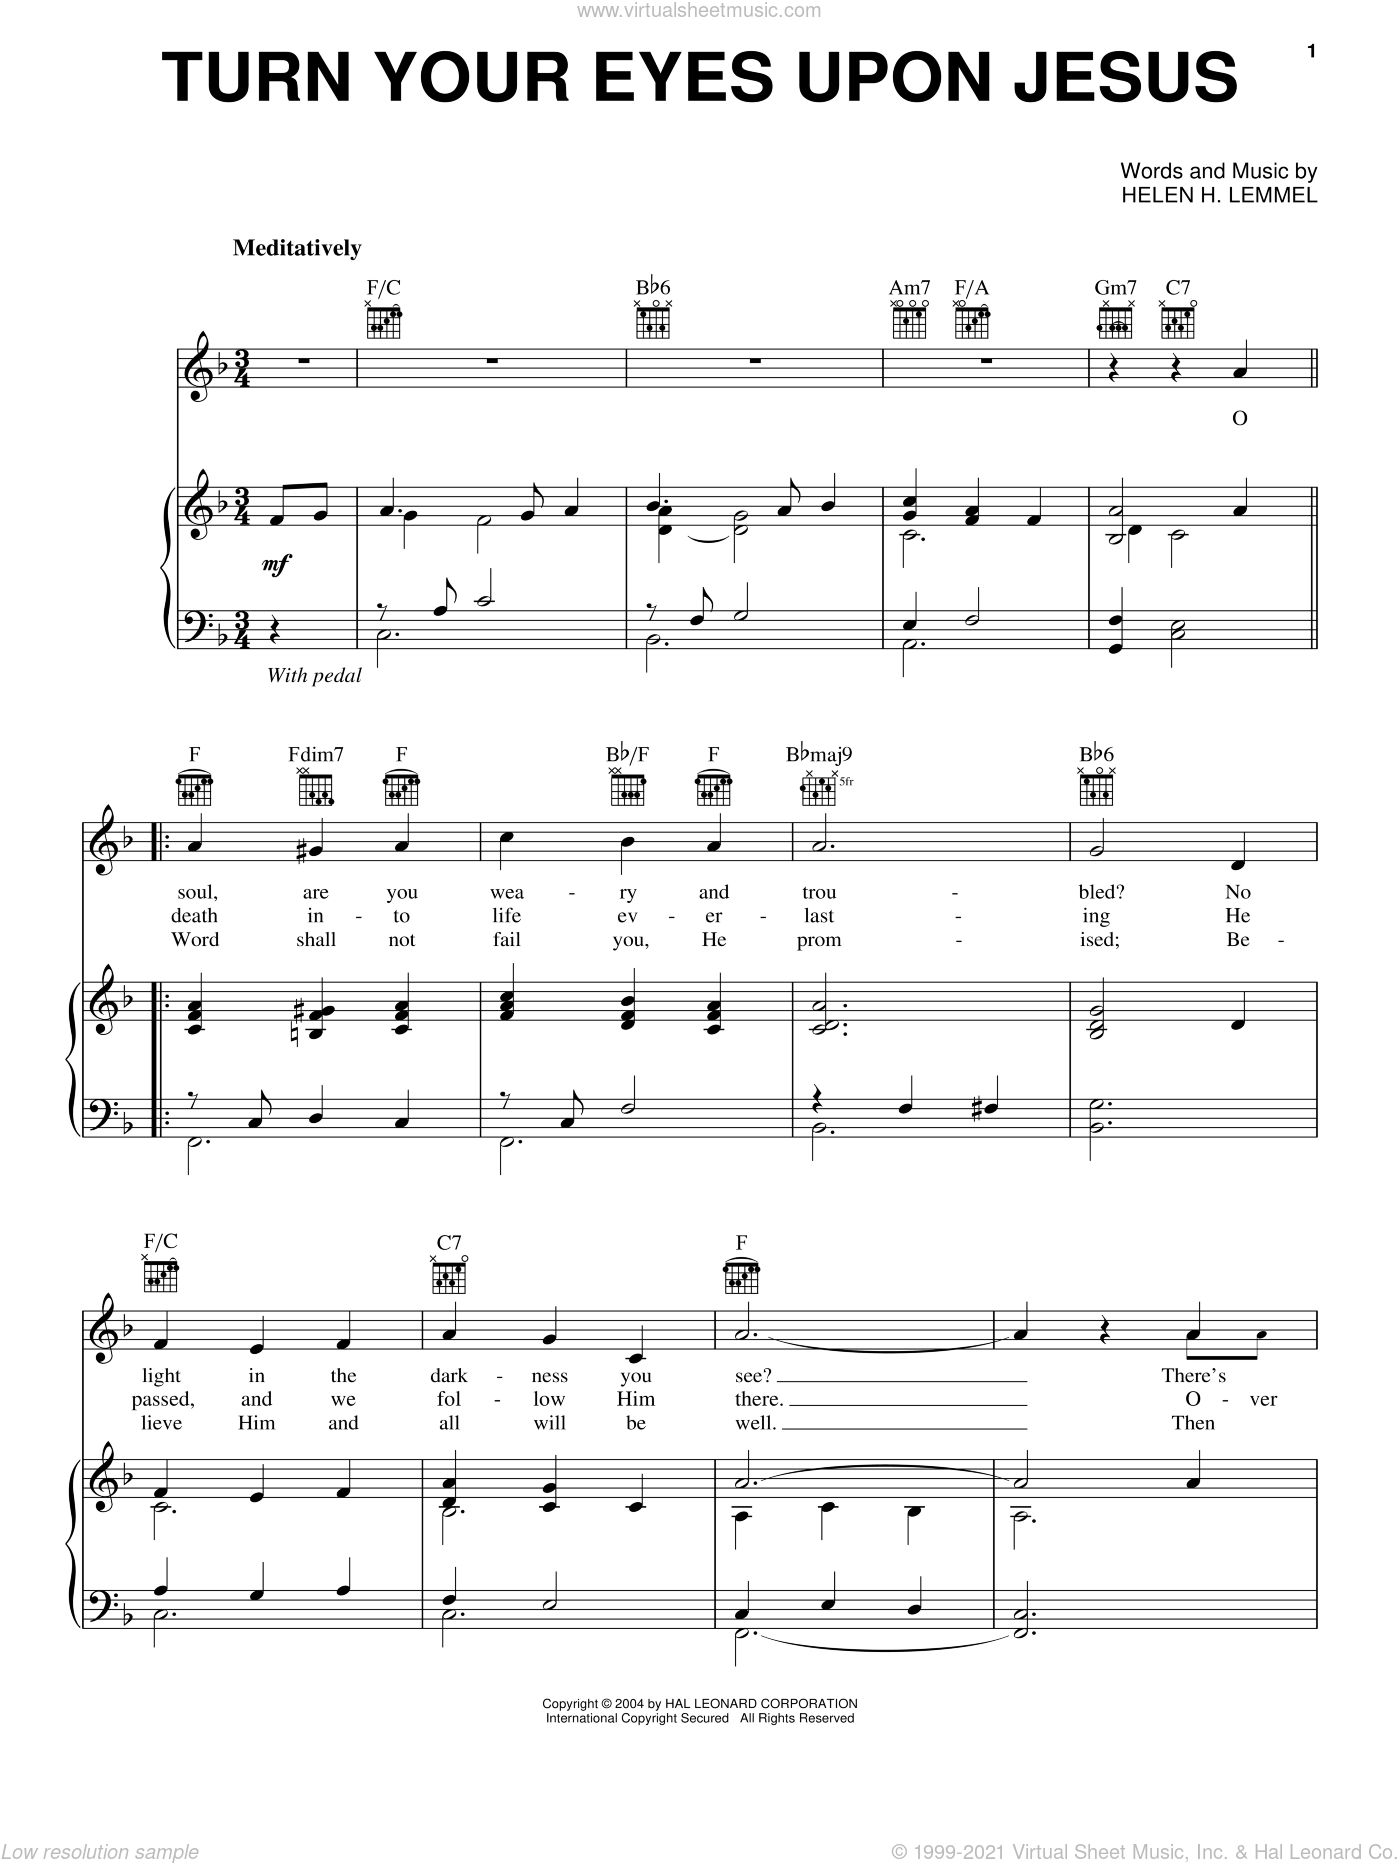 Turn Your Eyes Upon Jesus sheet music for voice, piano or guitar by Newsboys, Nathan DiGesare and Helen H. Lemmel, intermediate skill level